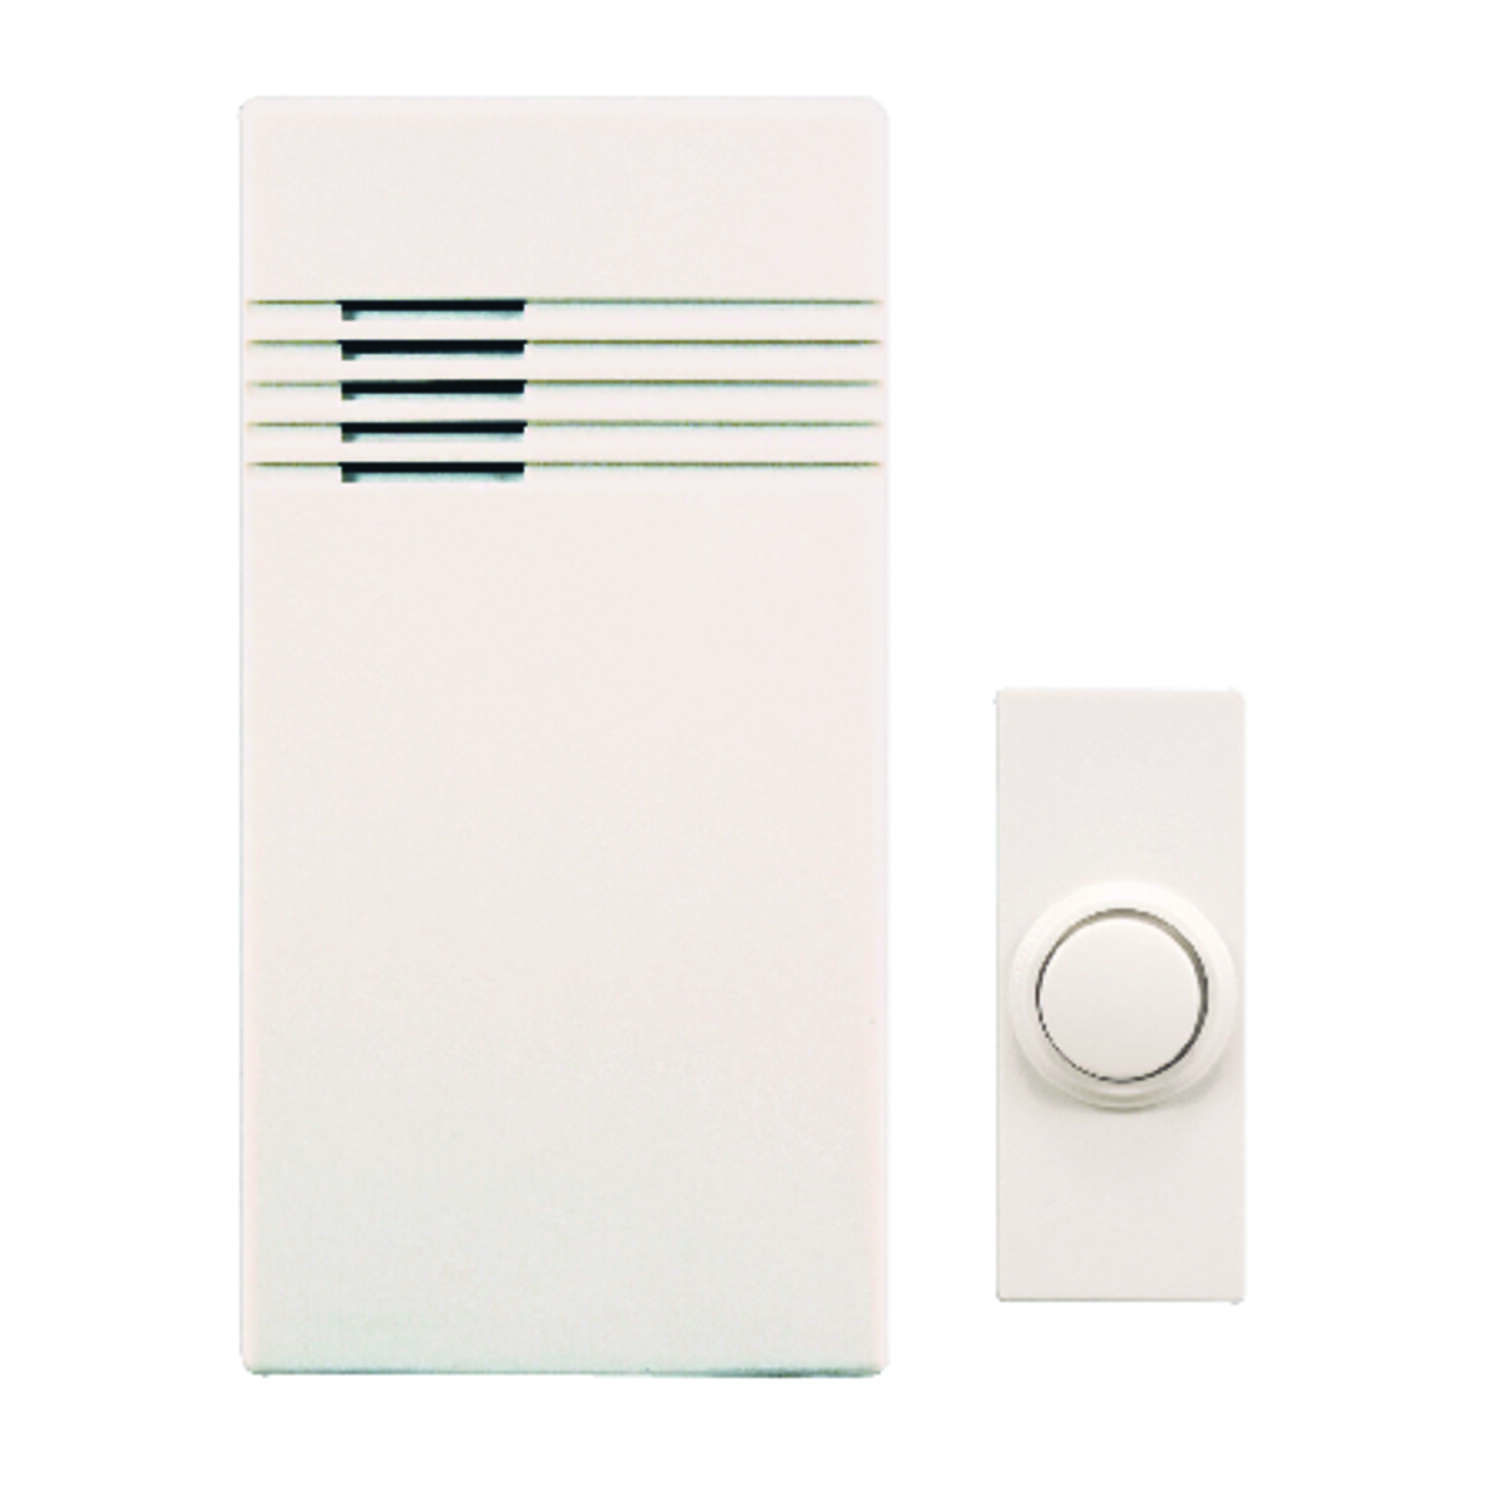 Heath Zenith  White  Plastic  Wireless  Door Chime Kit